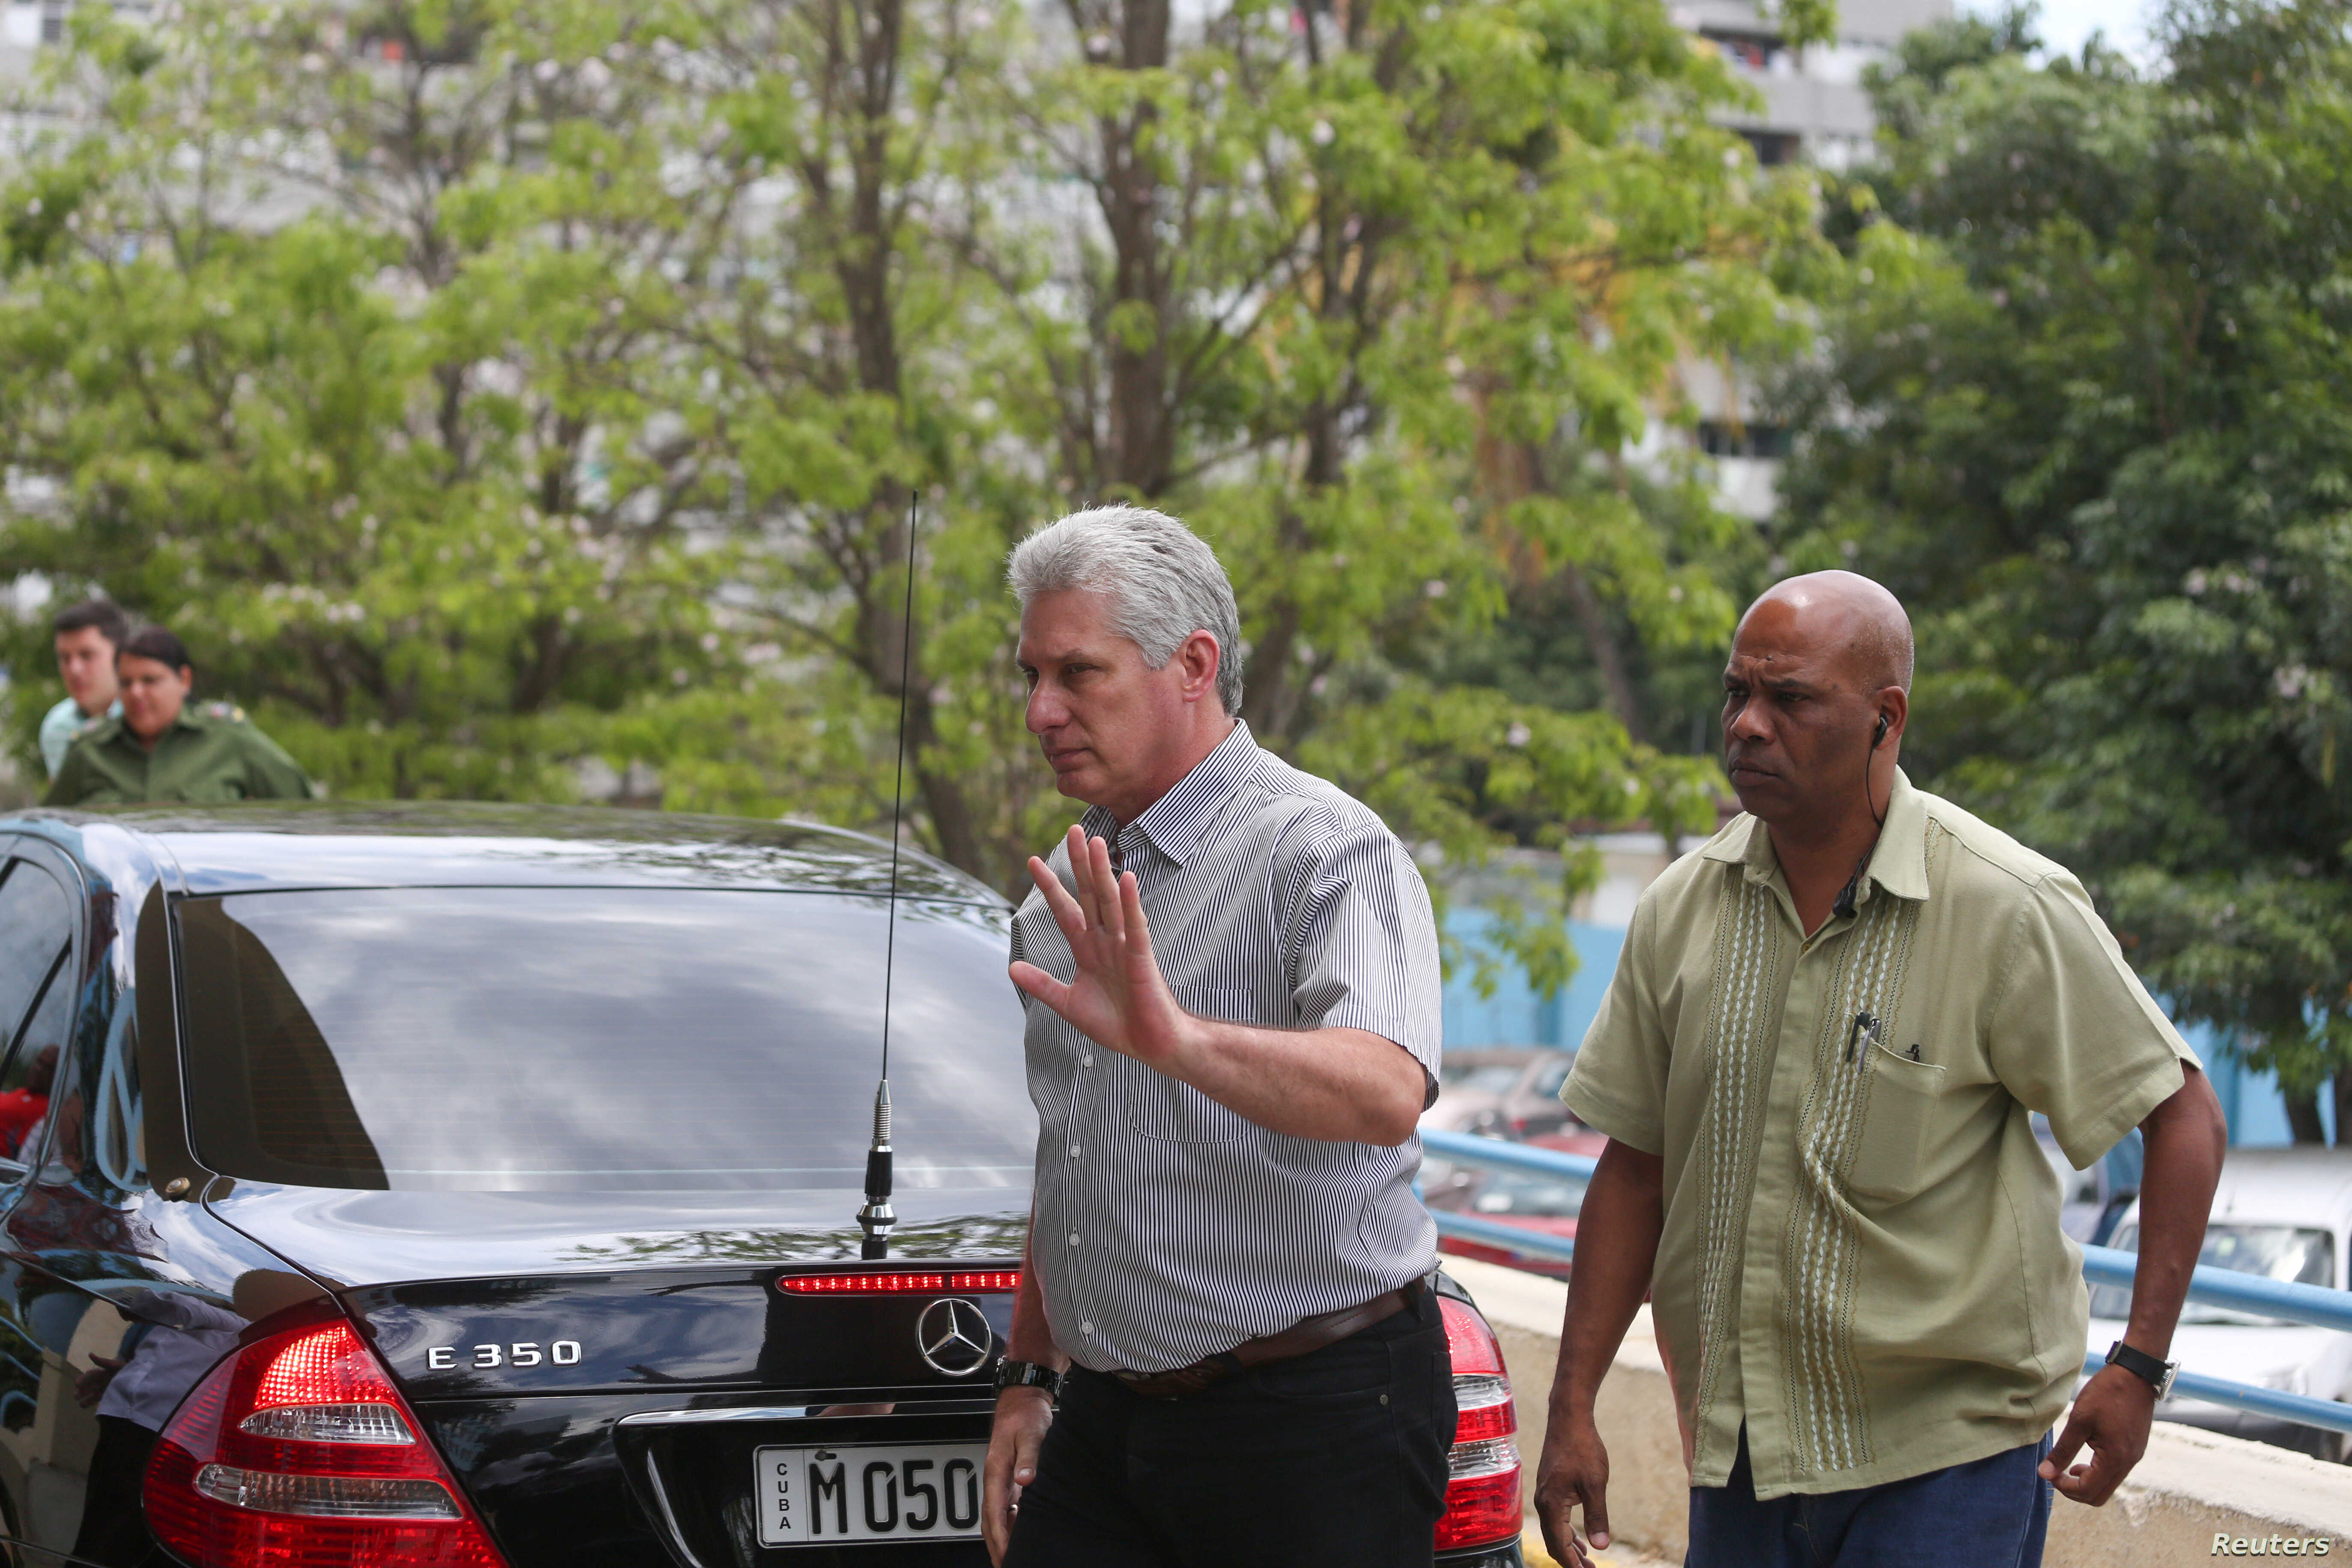 Cuba's President Miguel Diaz-Canel reacts as he arrives at a hotel to meet with relatives of victims of the previous day's Boeing 737 plane crash, in Havana, Cuba, May 19, 2018.